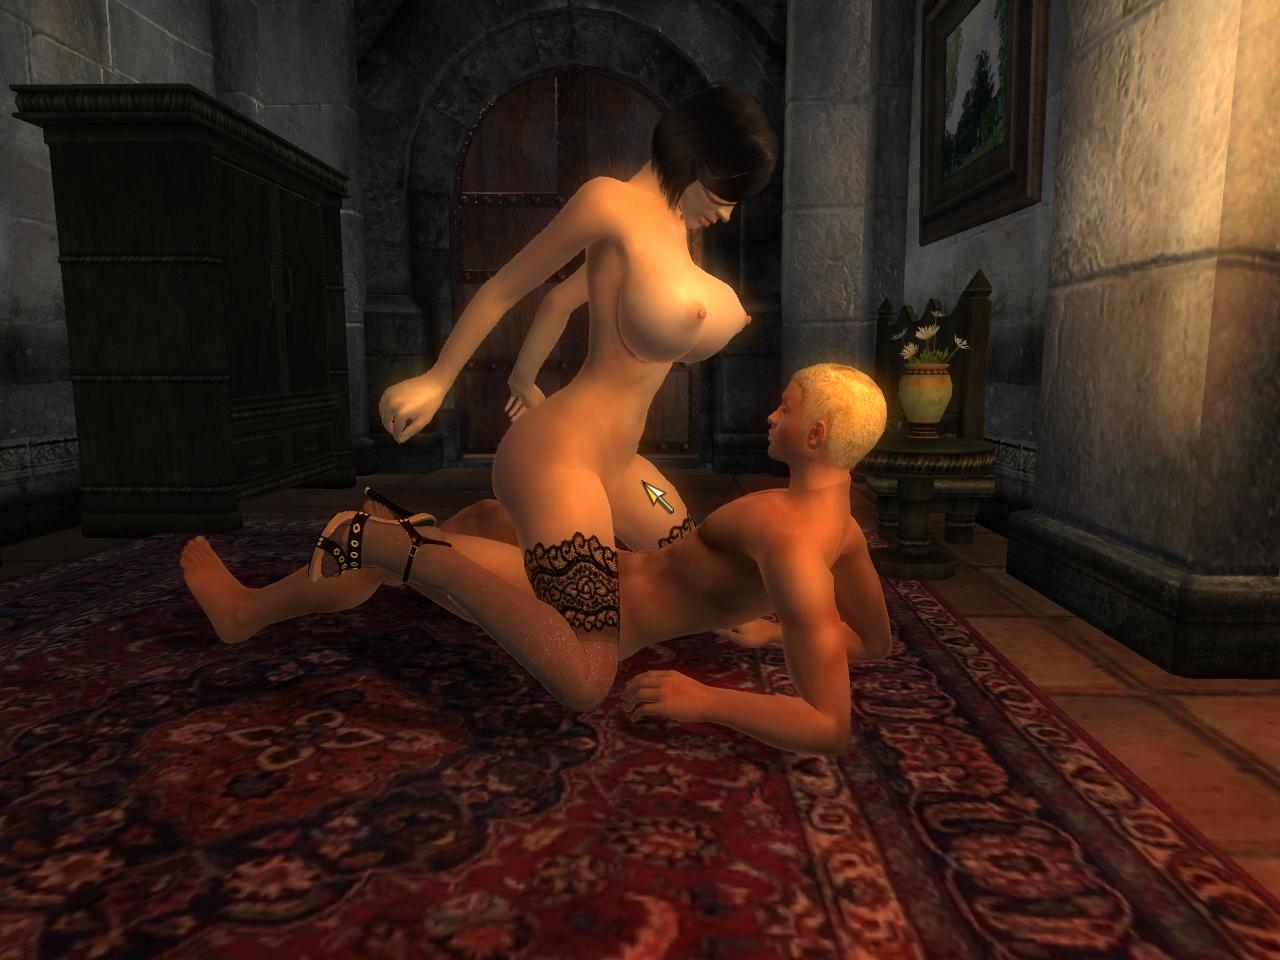 Oblivion nude females uncensored erotic toons